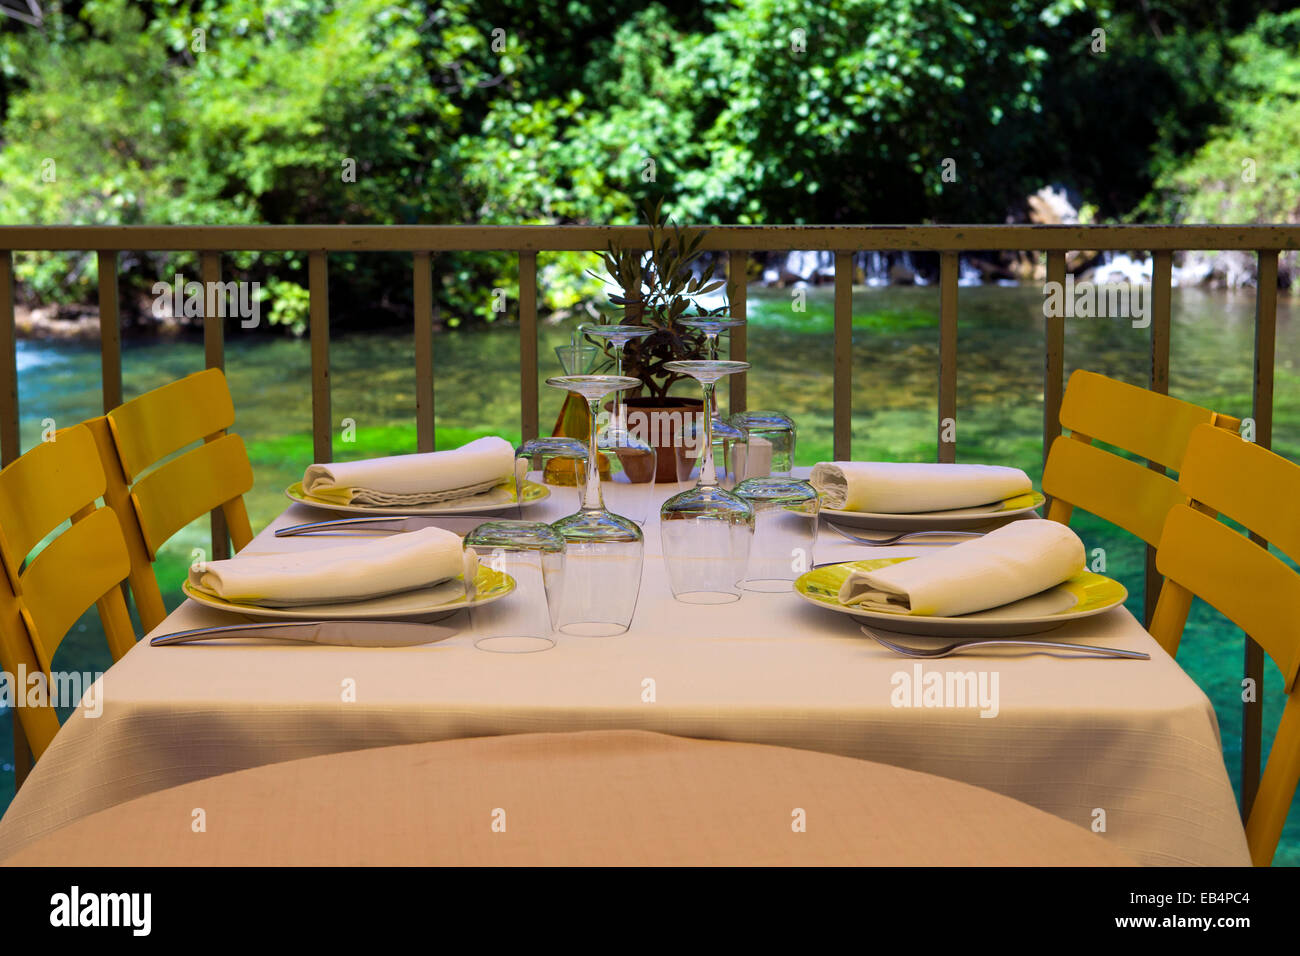 Restaurant table by the river - Stock Image